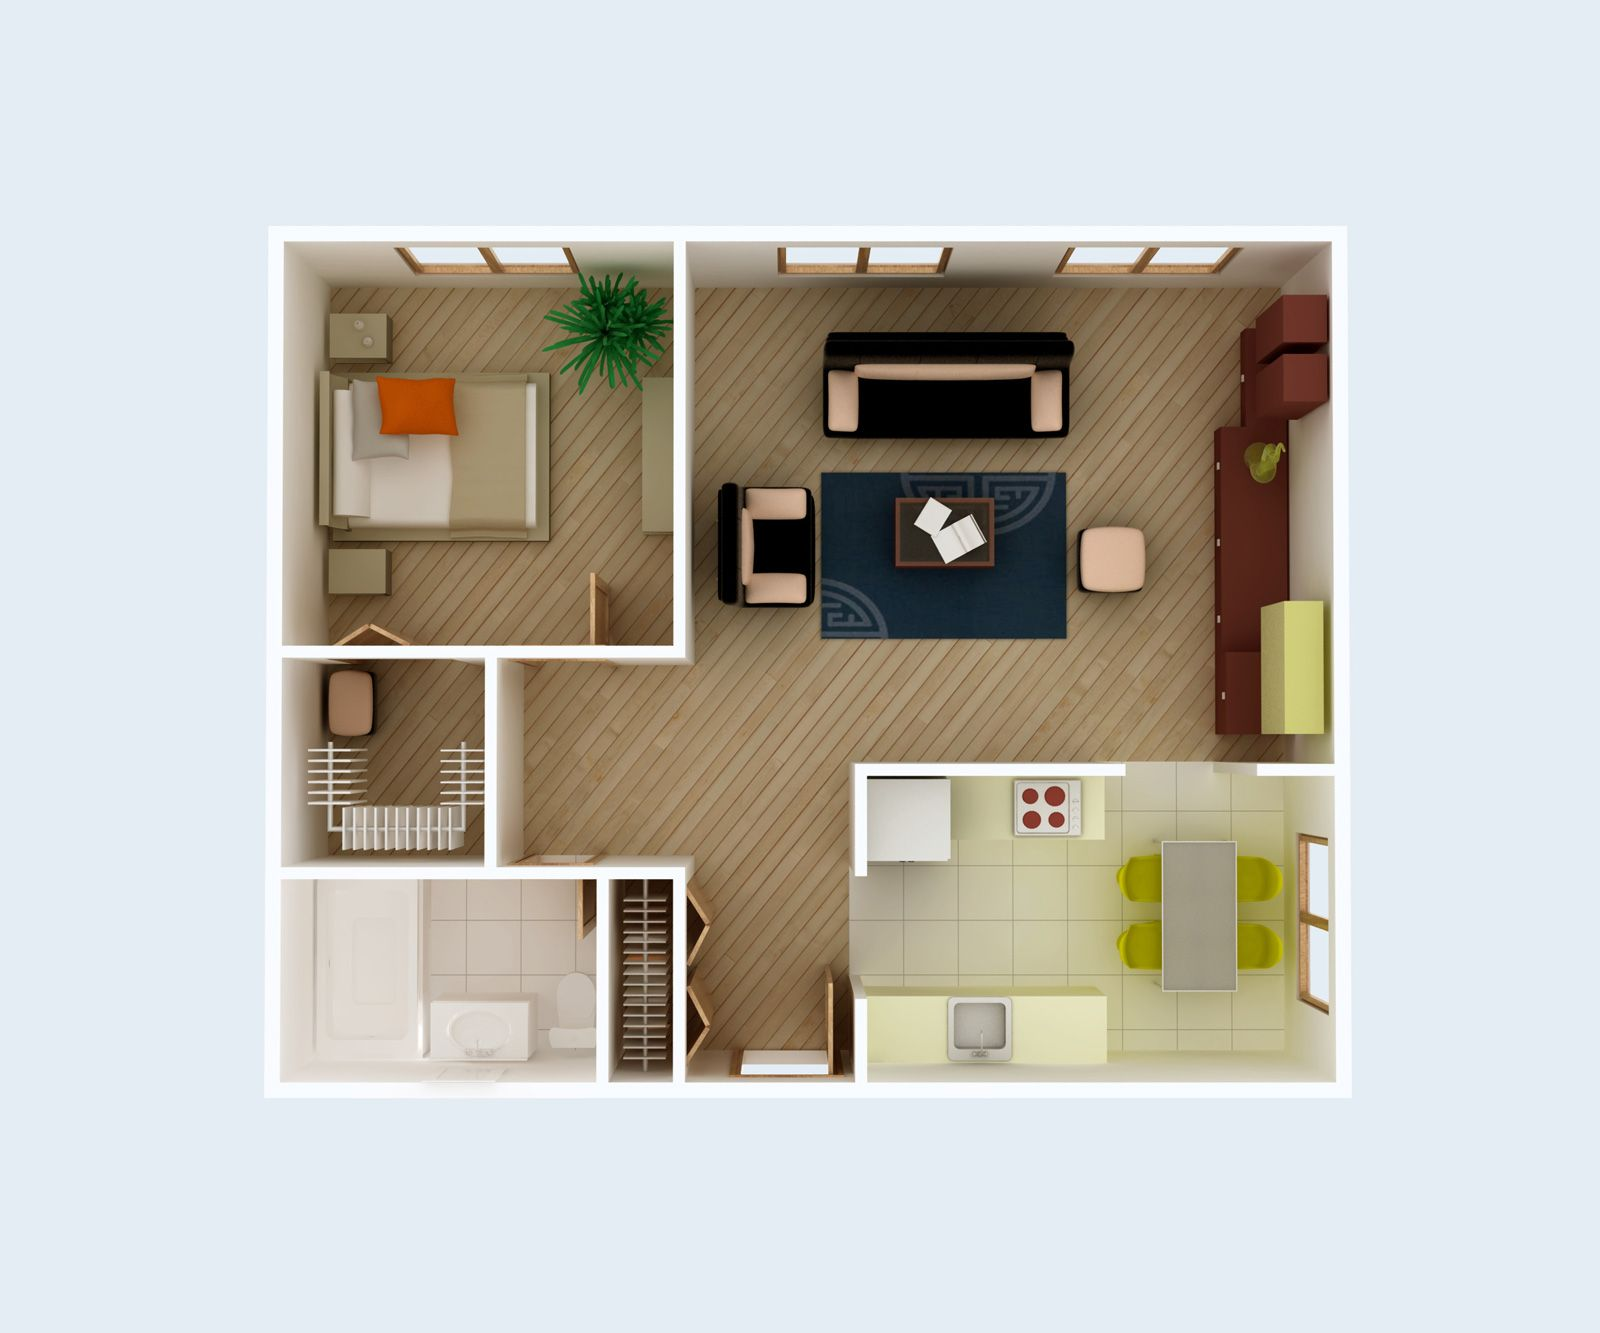 Simple home design software wallpapers - Simple home design software free ...